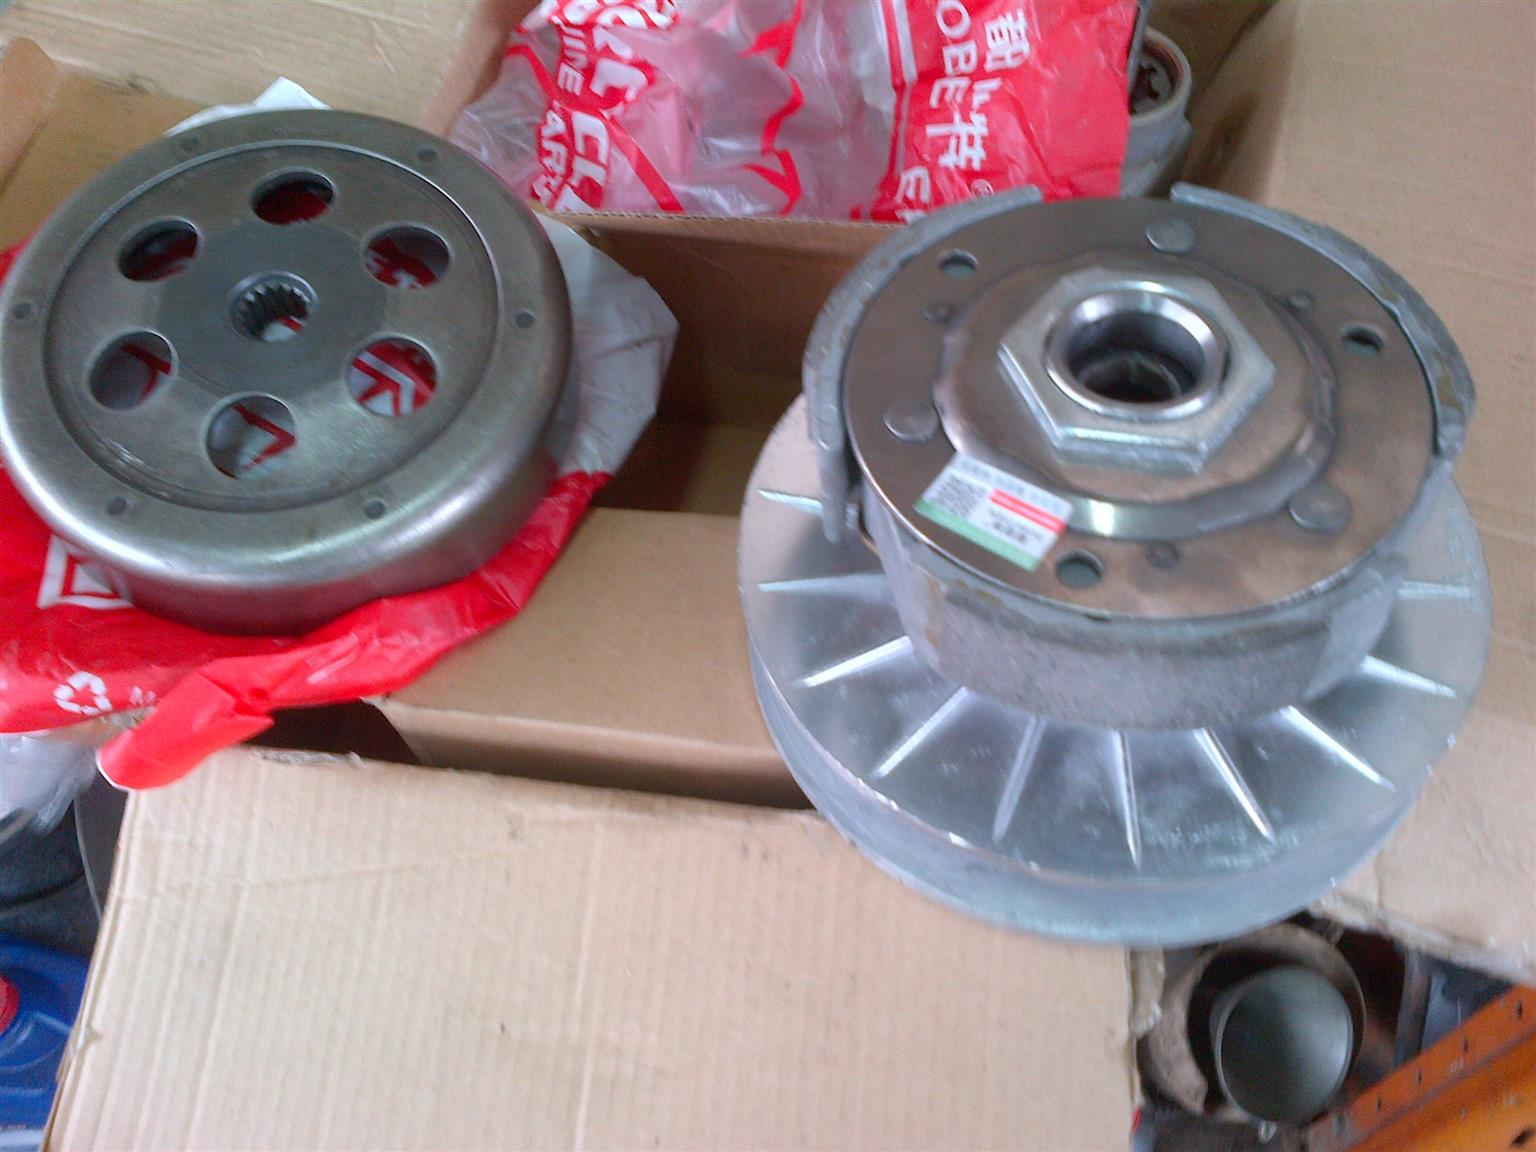 LINHAI/KYMCO/ 250/300cc BRAND NEW PARTS IMPORTED @CLIVES IMPORTS